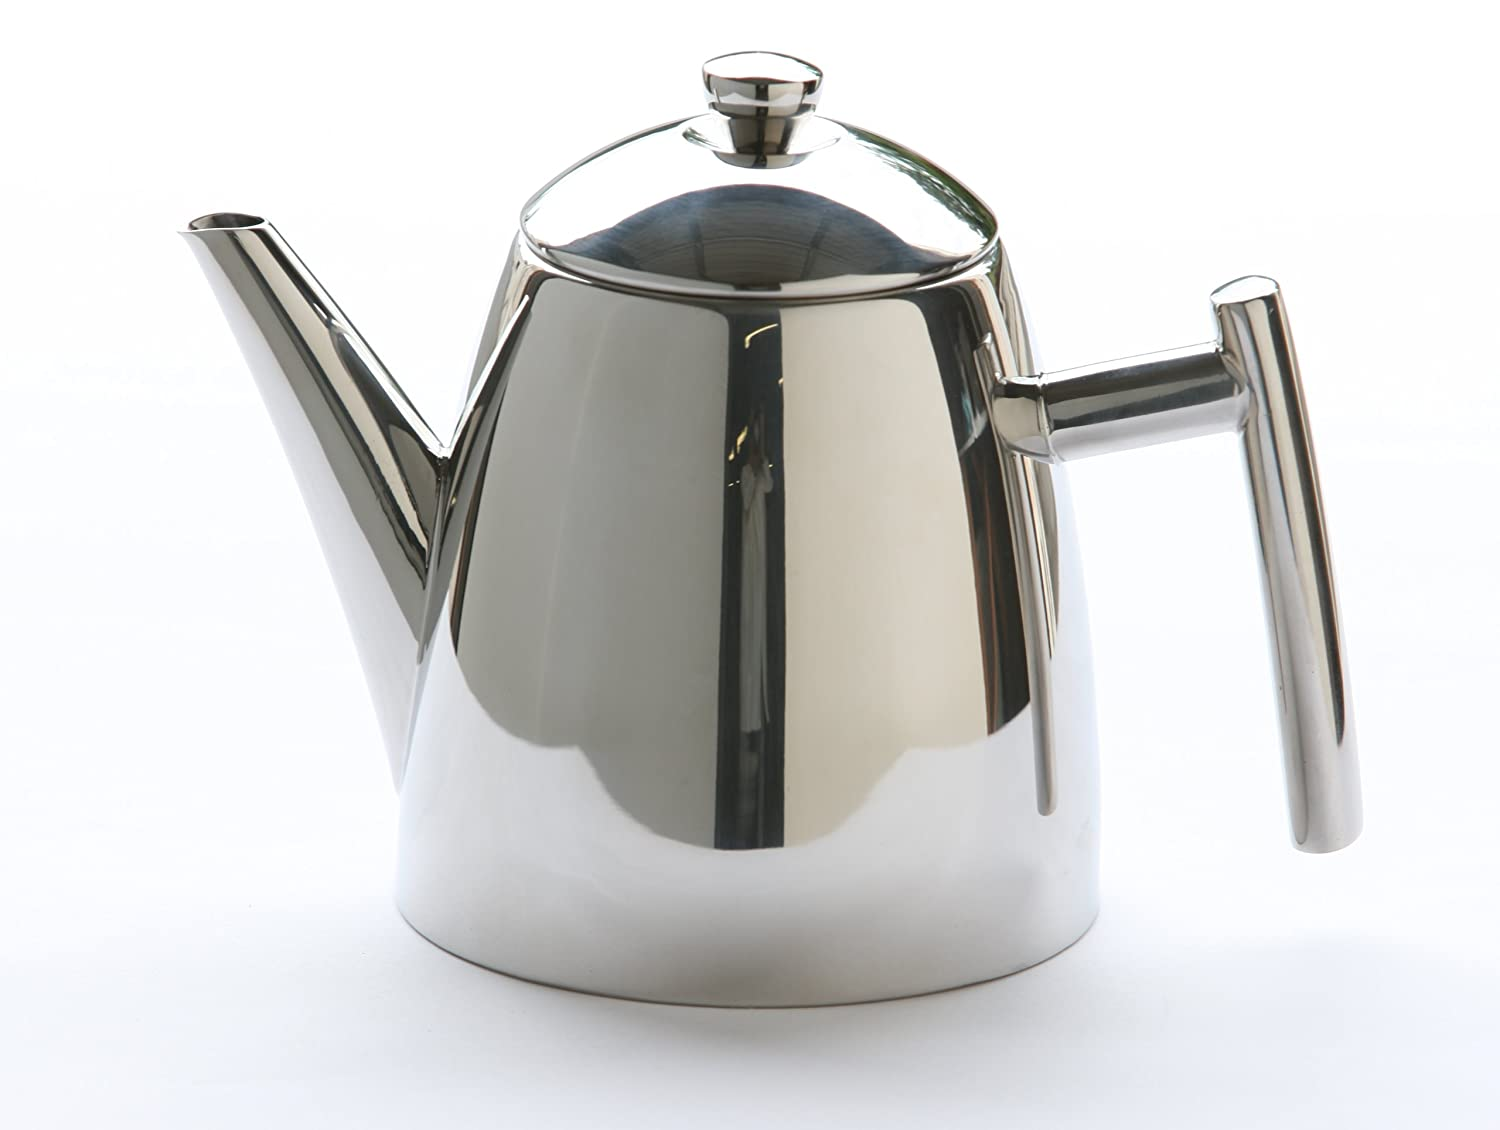 frieling  stainless steel primo teapot with infuser ounce  - frieling  stainless steel primo teapot with infuser ounceamazonca home  kitchen